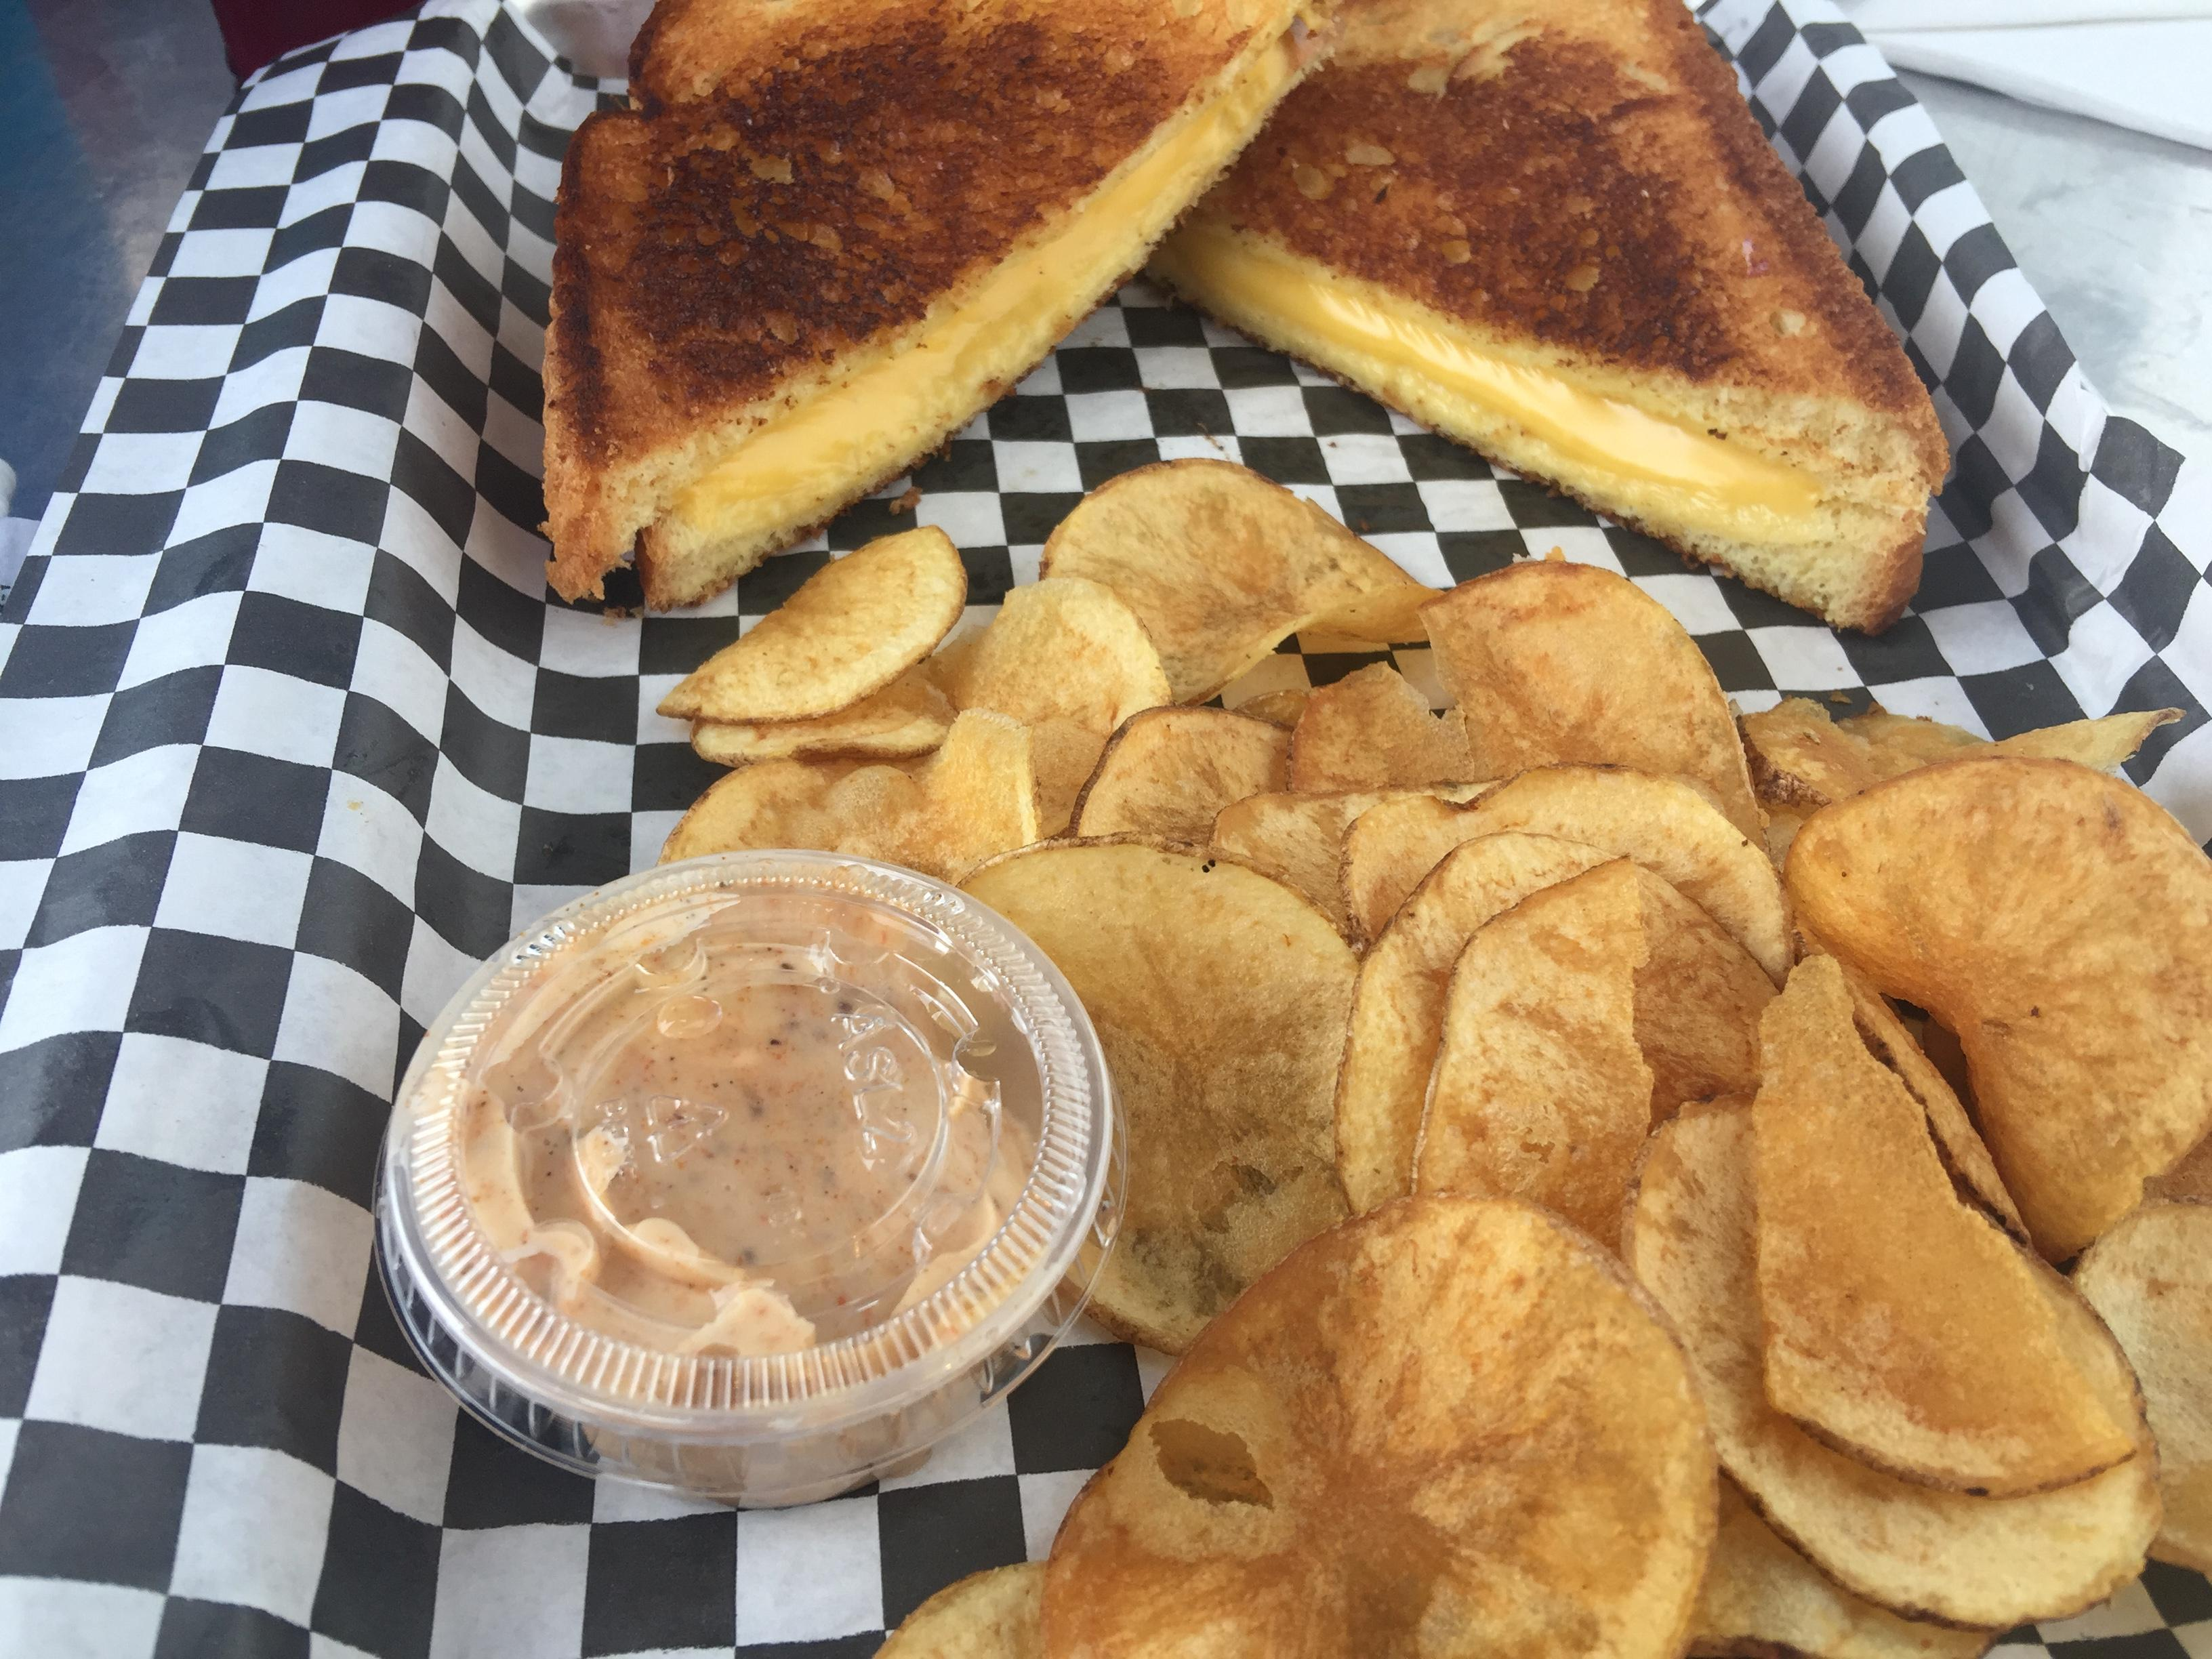 Grilled cheese sandwich with chips at Oceans 13 $7 2018. Fries are better. #food